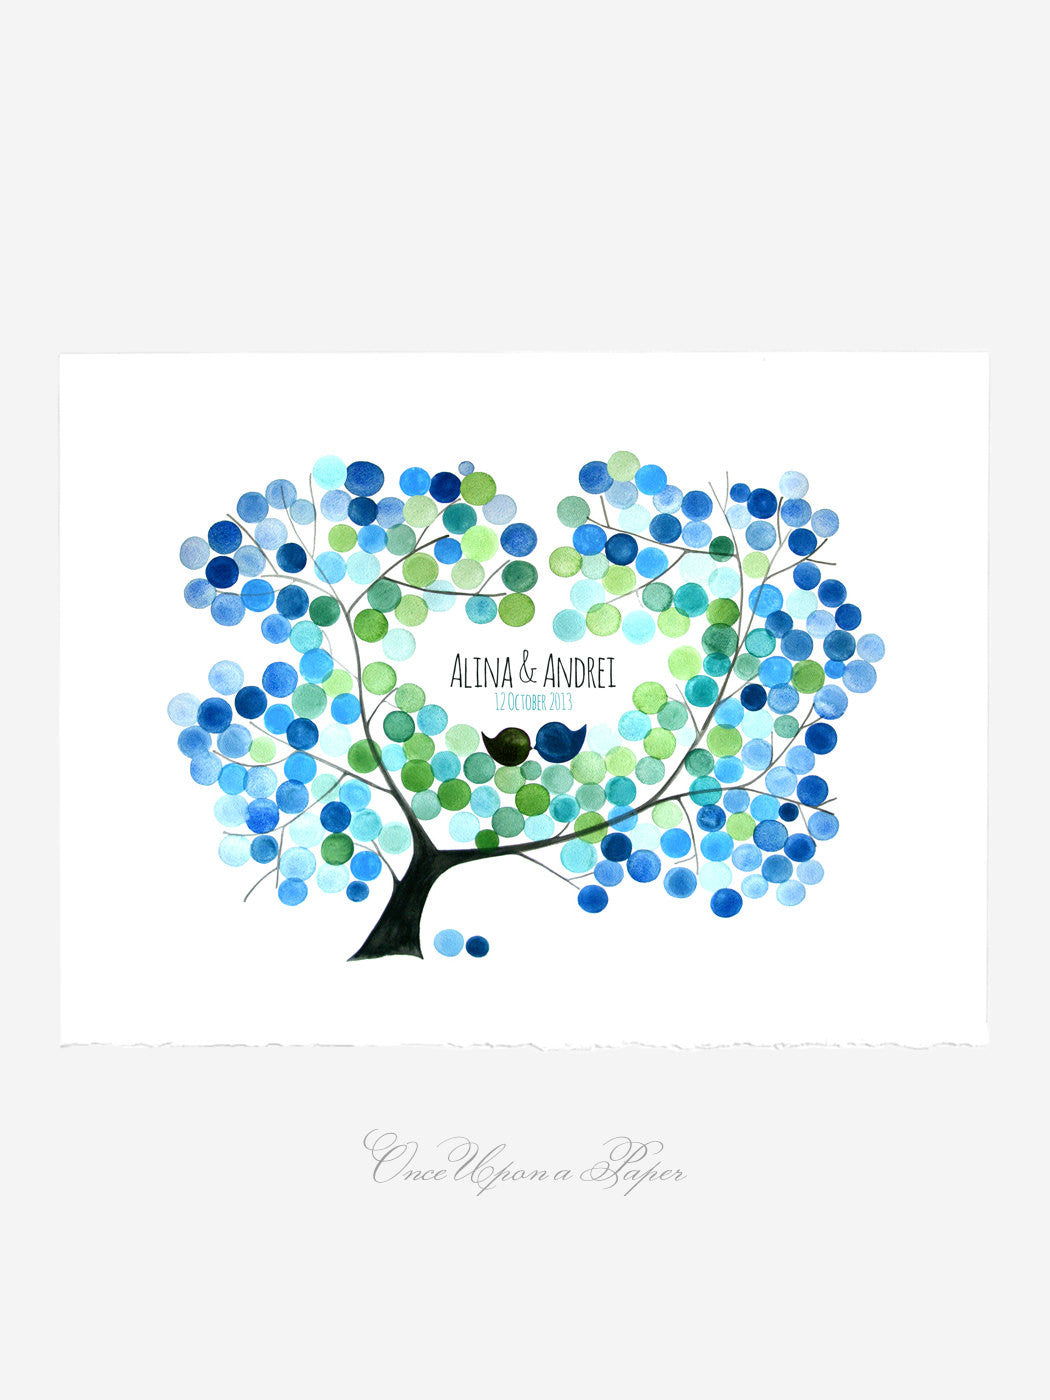 Wedding Guest Book AMUR MAPLE TREE guestbook print - 200 Guest Signatures - Alternative Guest Book wedding tree Art Print gift ideas